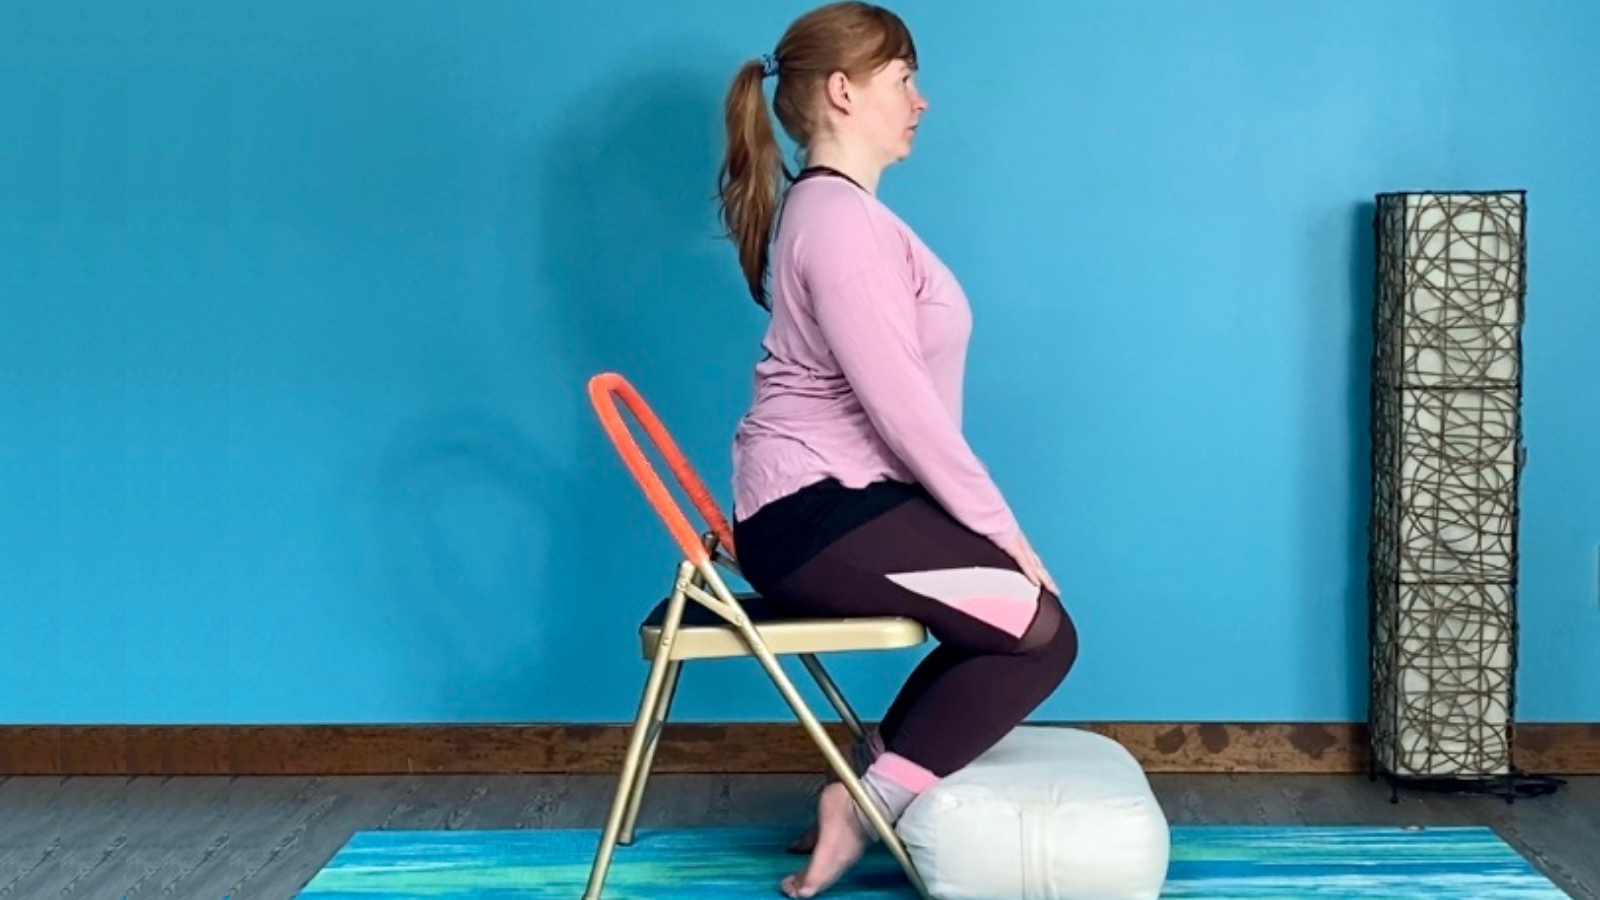 How to practice Hero Pose (Sanskrit name: Virasana) with a chair and bolster to help support the hips, knees, and ankles